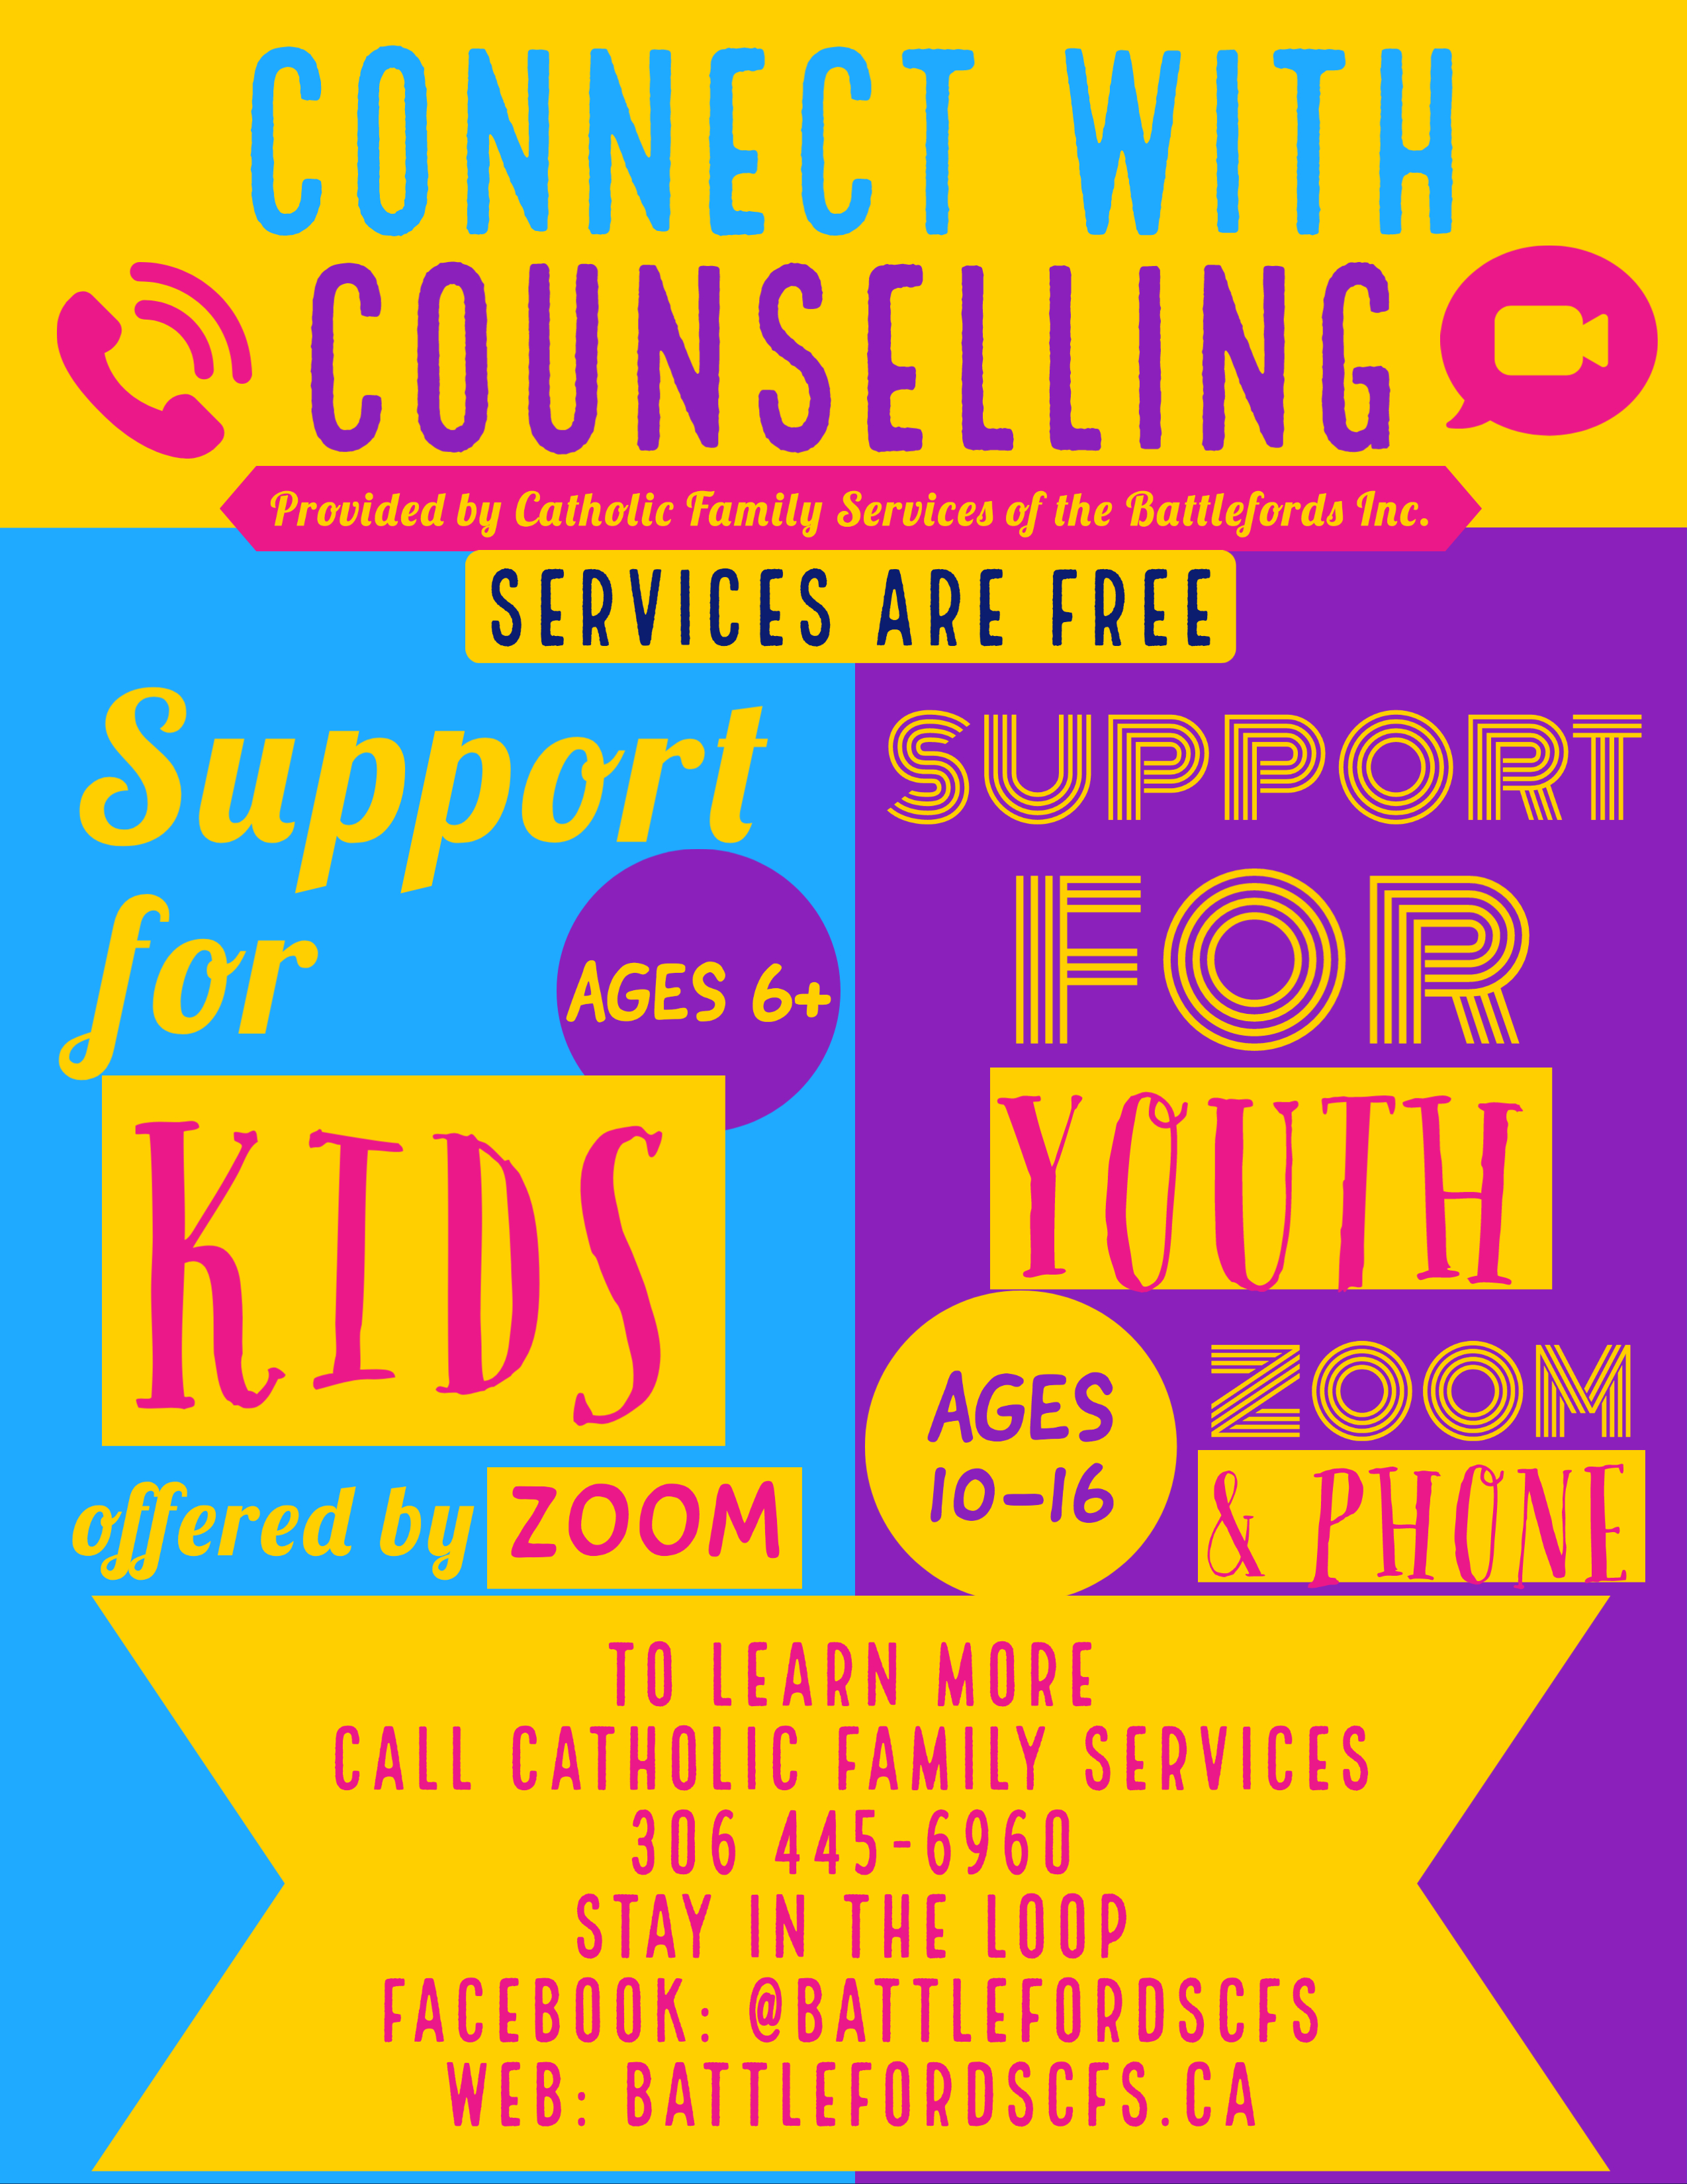 Child&Youth Counselling